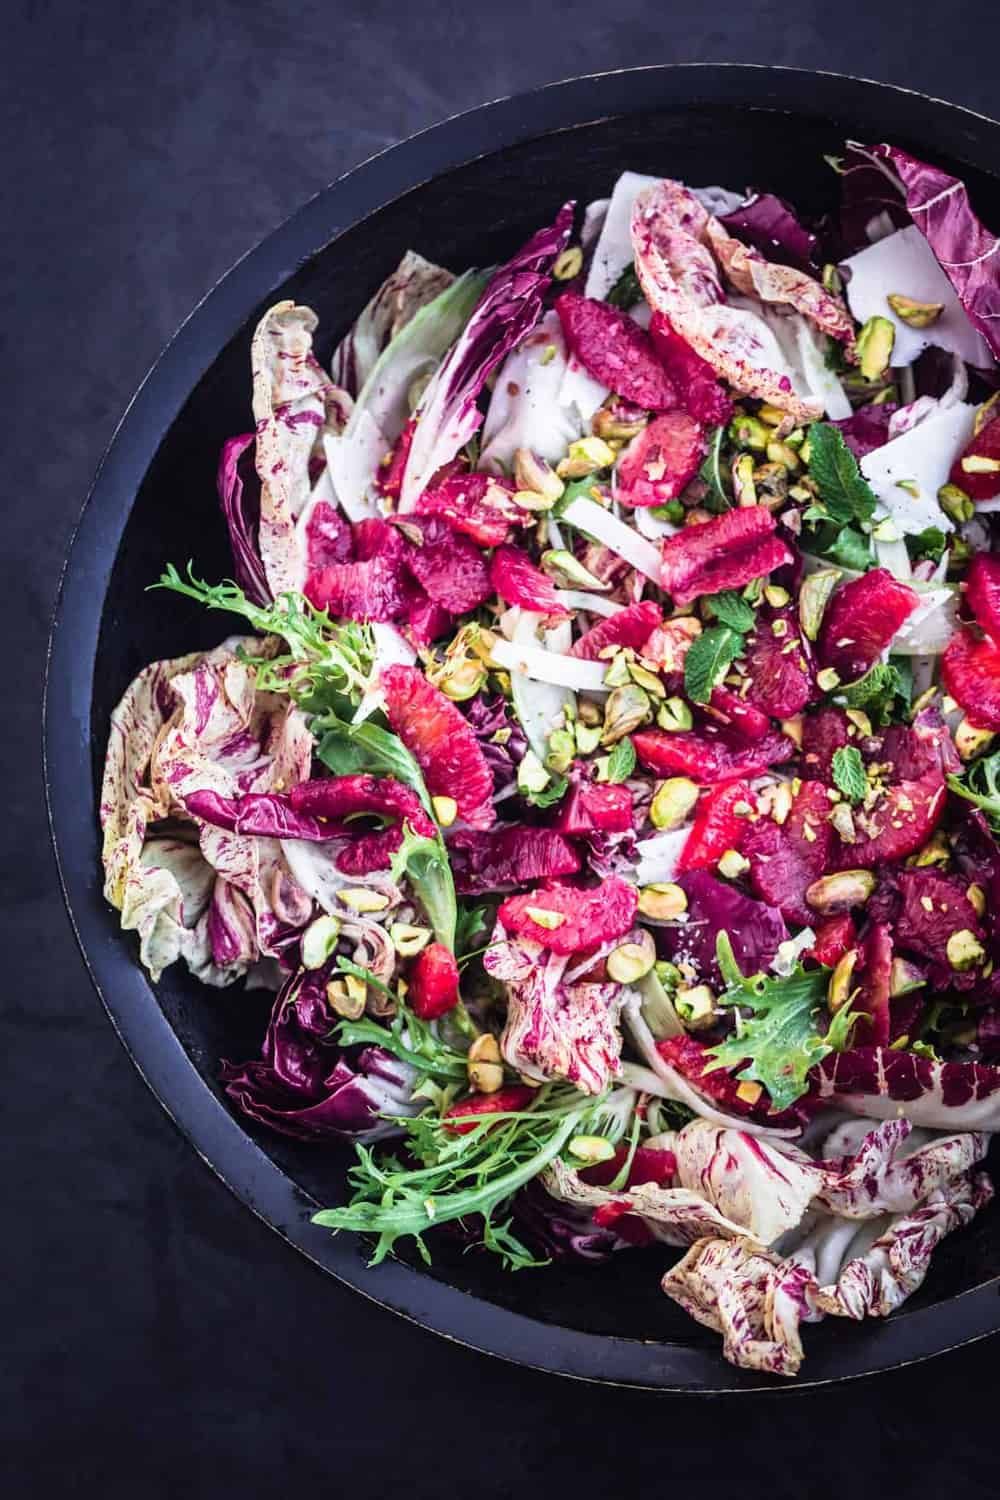 Blood Orange & Fennel Salad with chicories, ricotta salata, pistachios and mint in a large dark bowl.